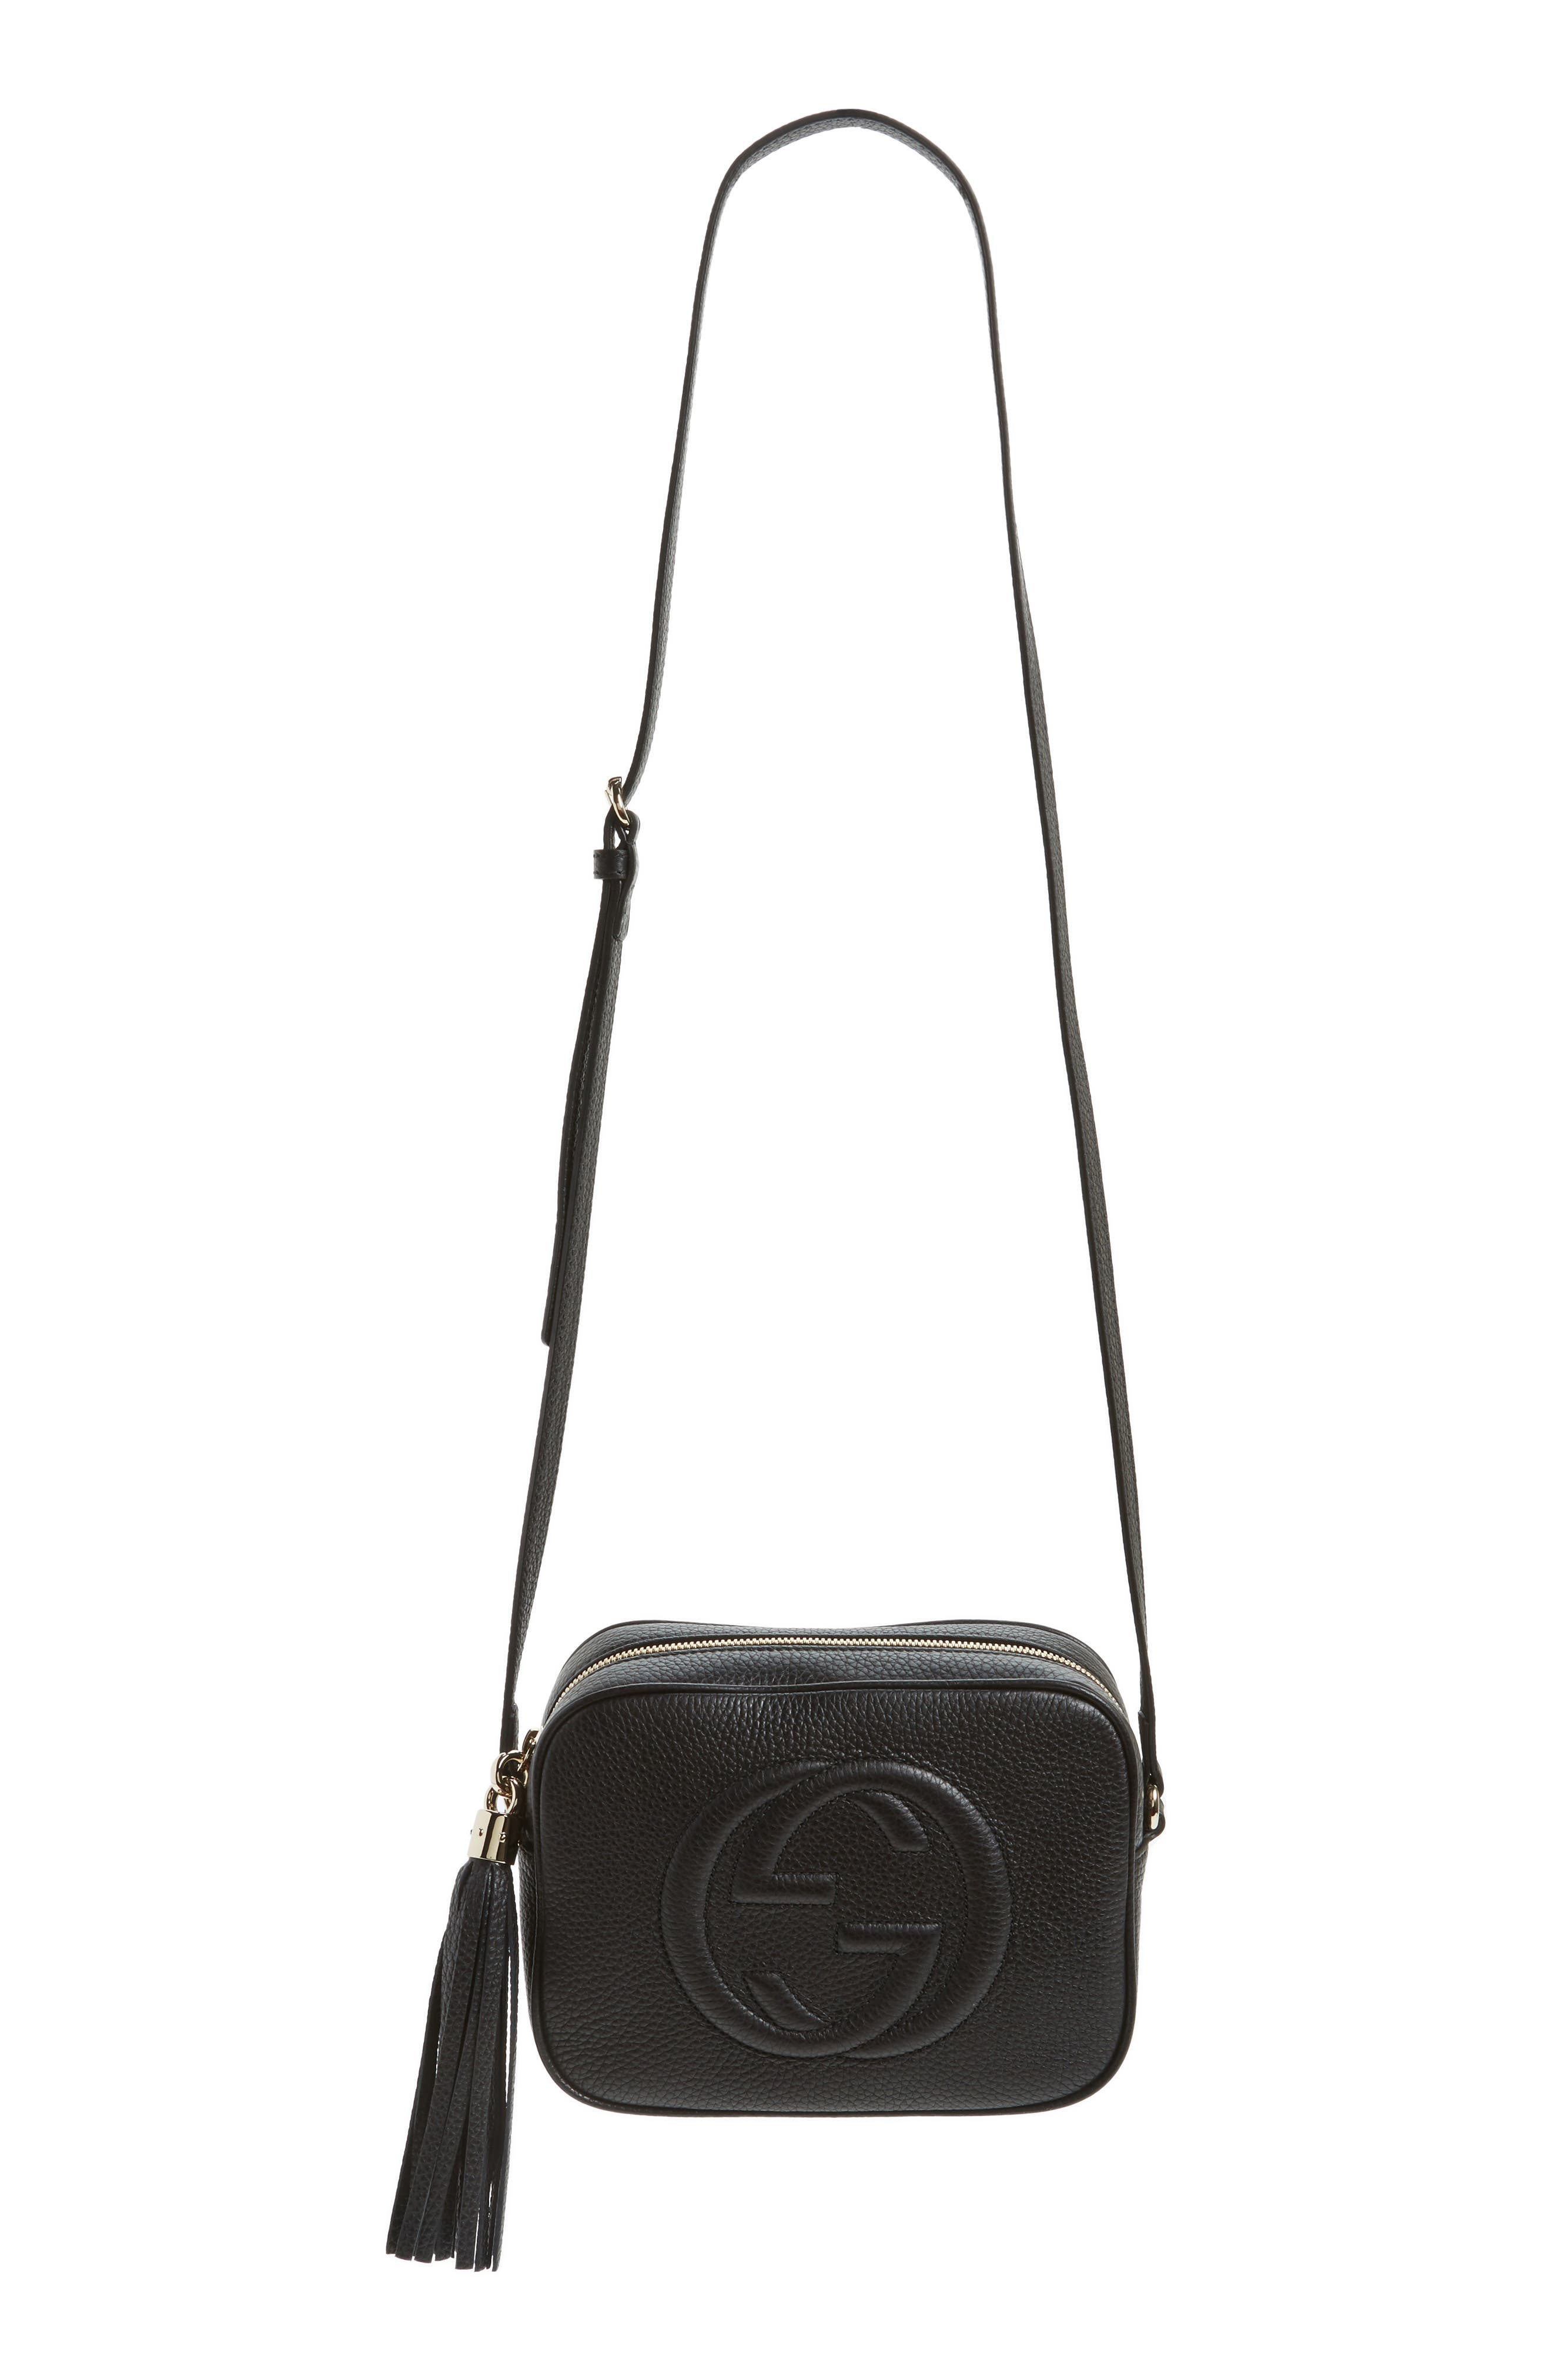 Alternate Image 1 Selected - Gucci Soho Disco Leather Bag